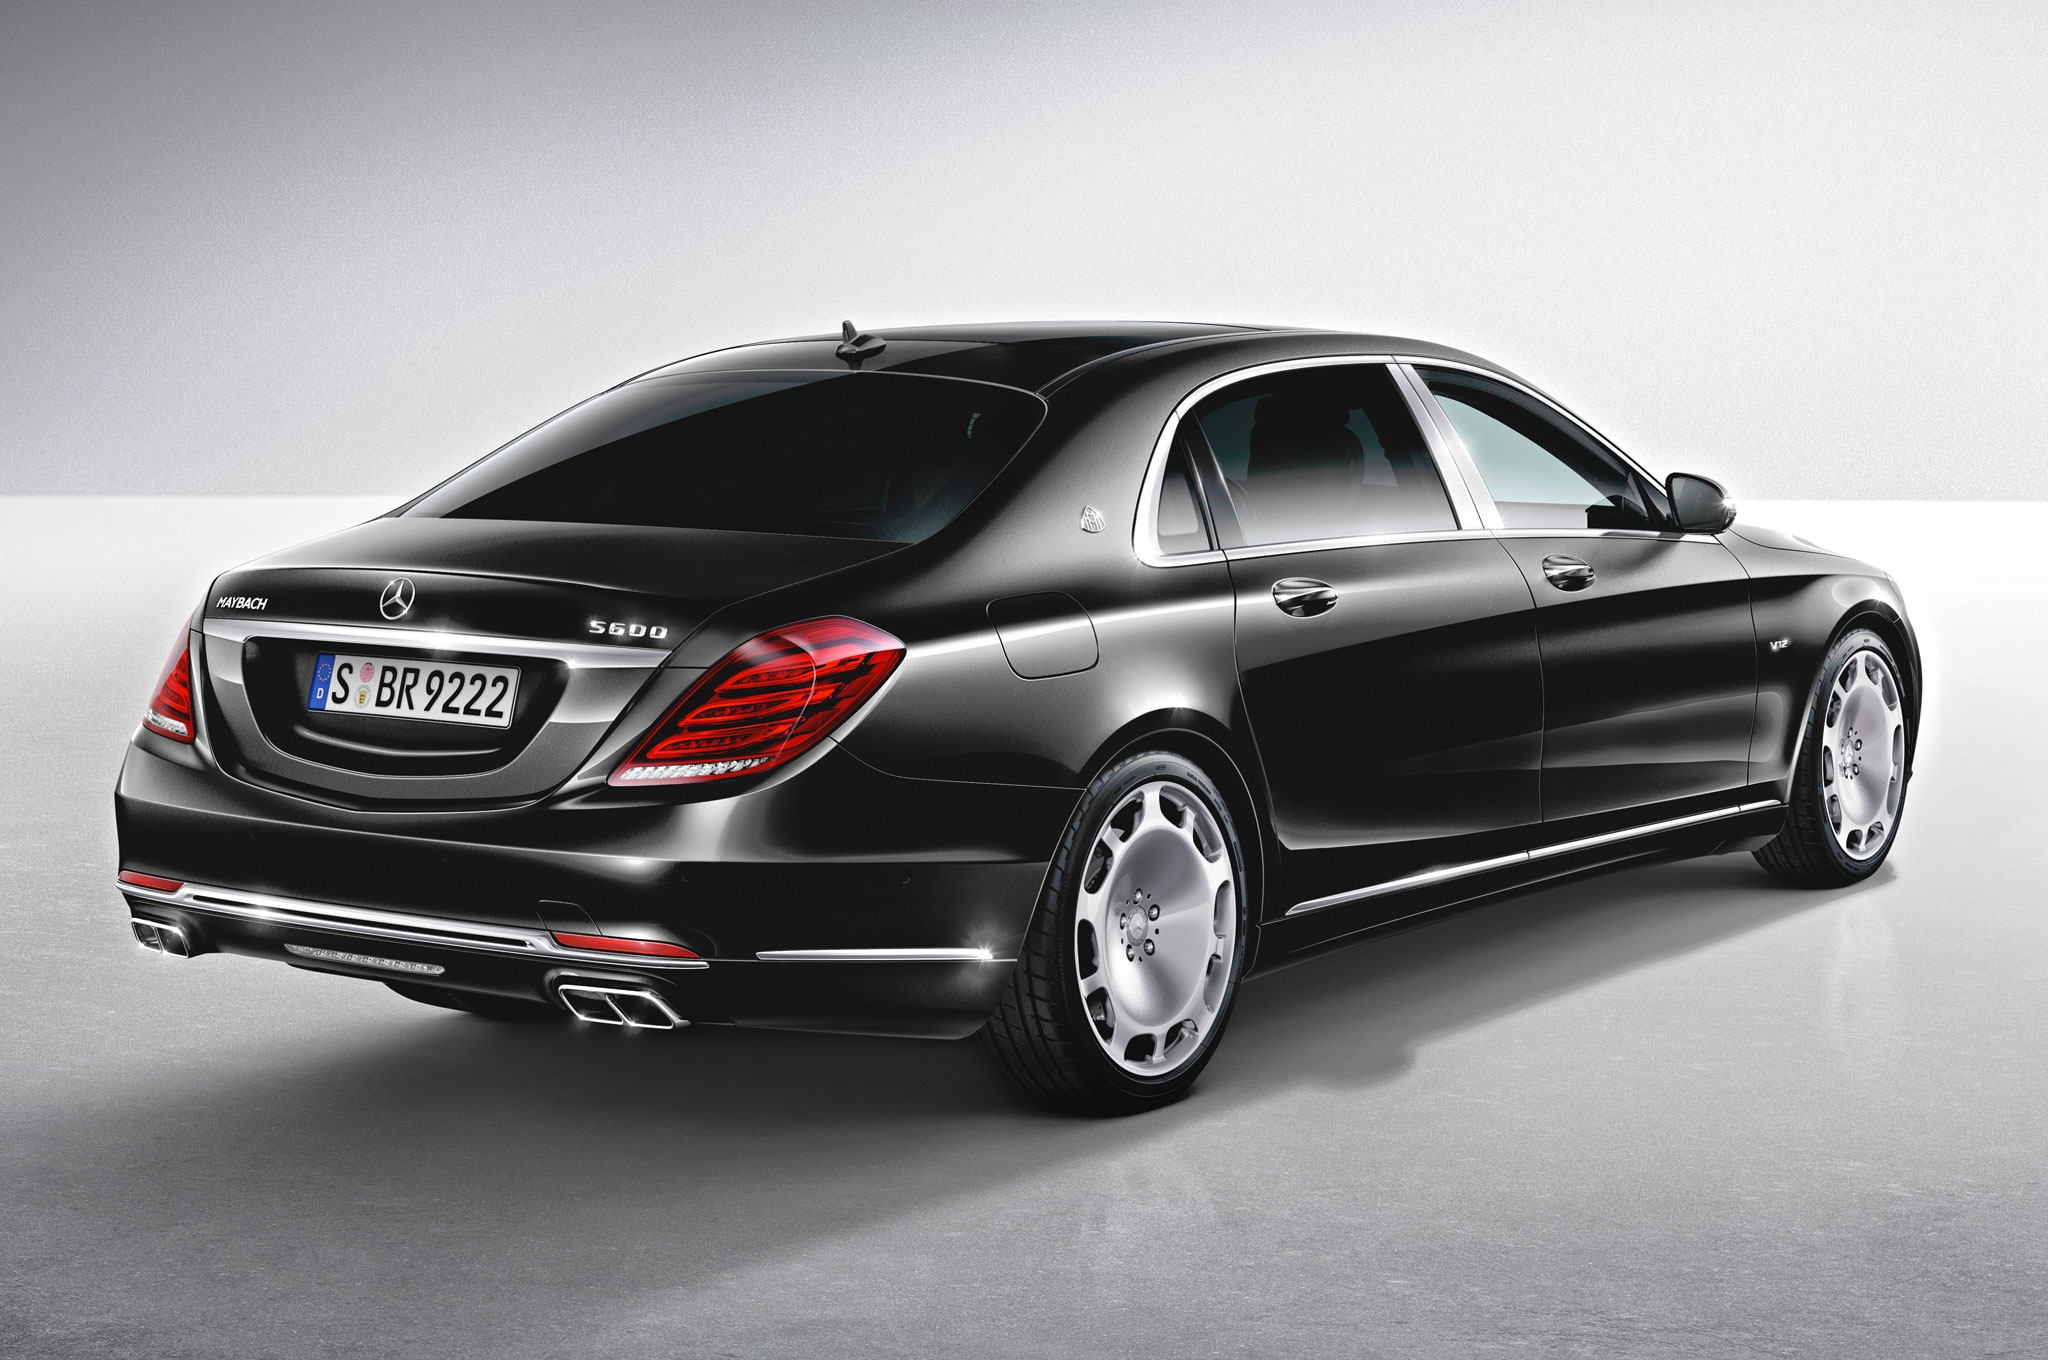 Mercedes Maybach S600 HD wallpapers download 2048x1360